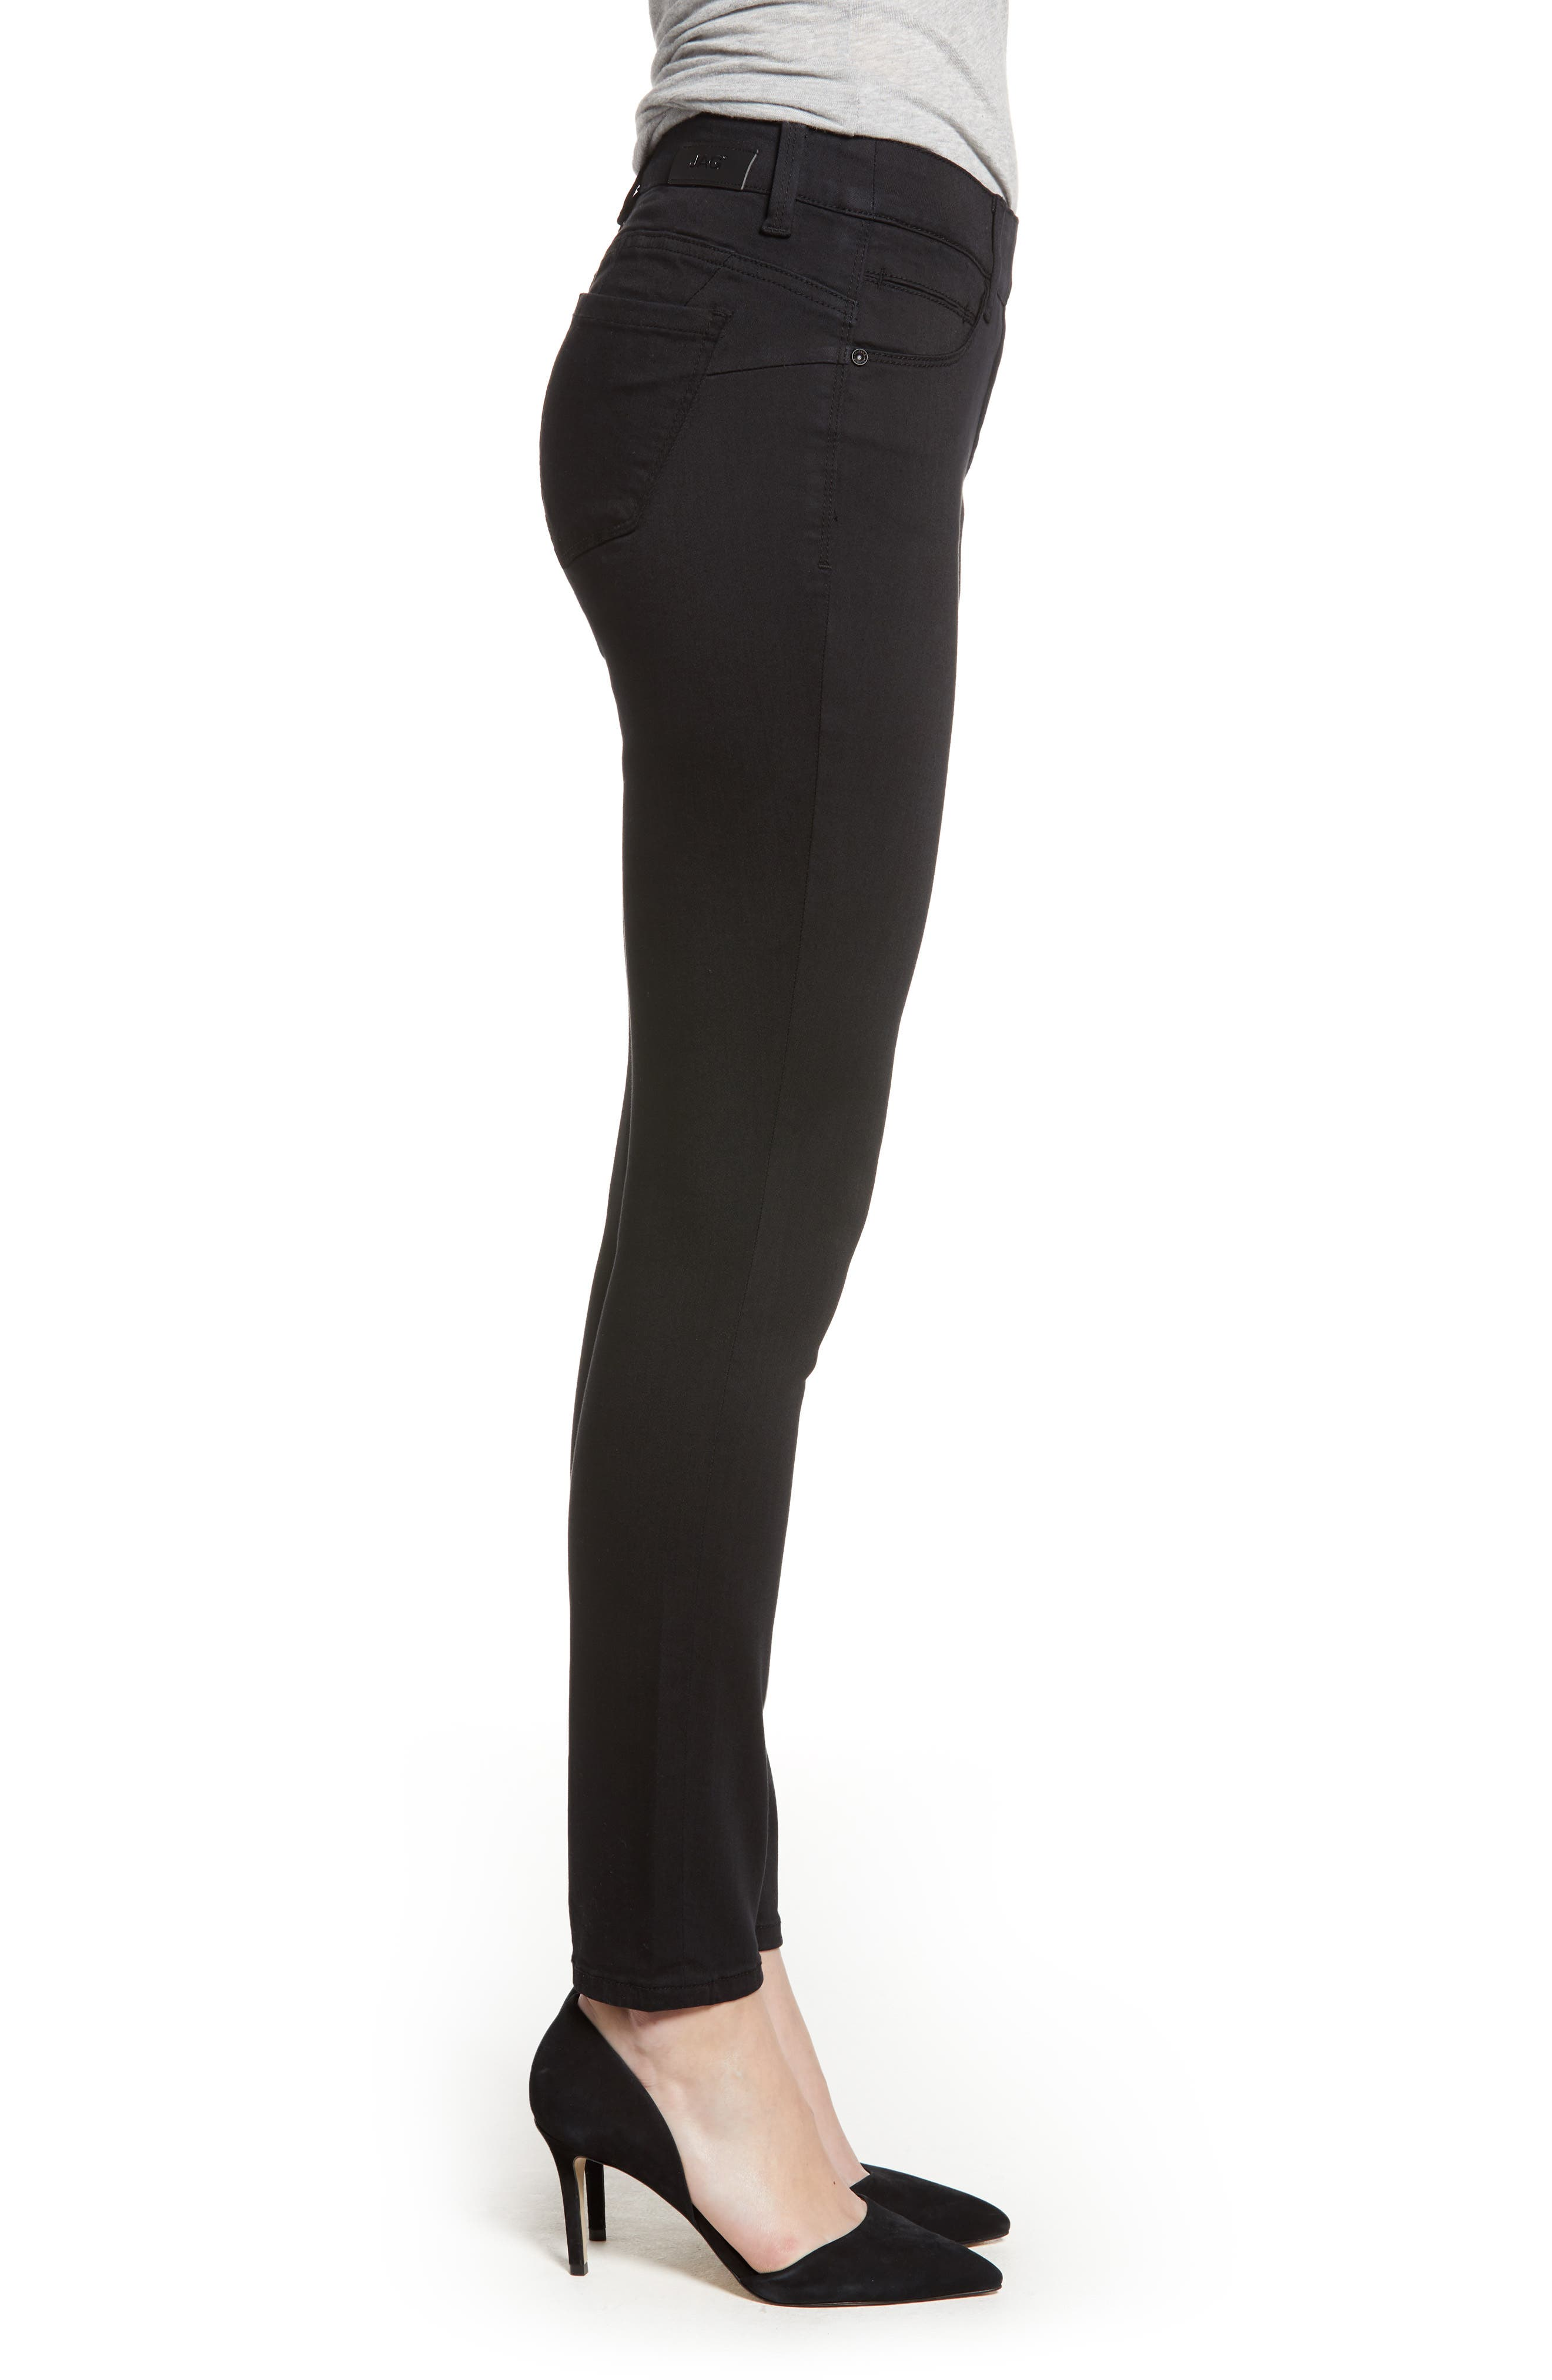 JAG JEANS, Bryn Pull-On Jeans, Alternate thumbnail 4, color, BLACK